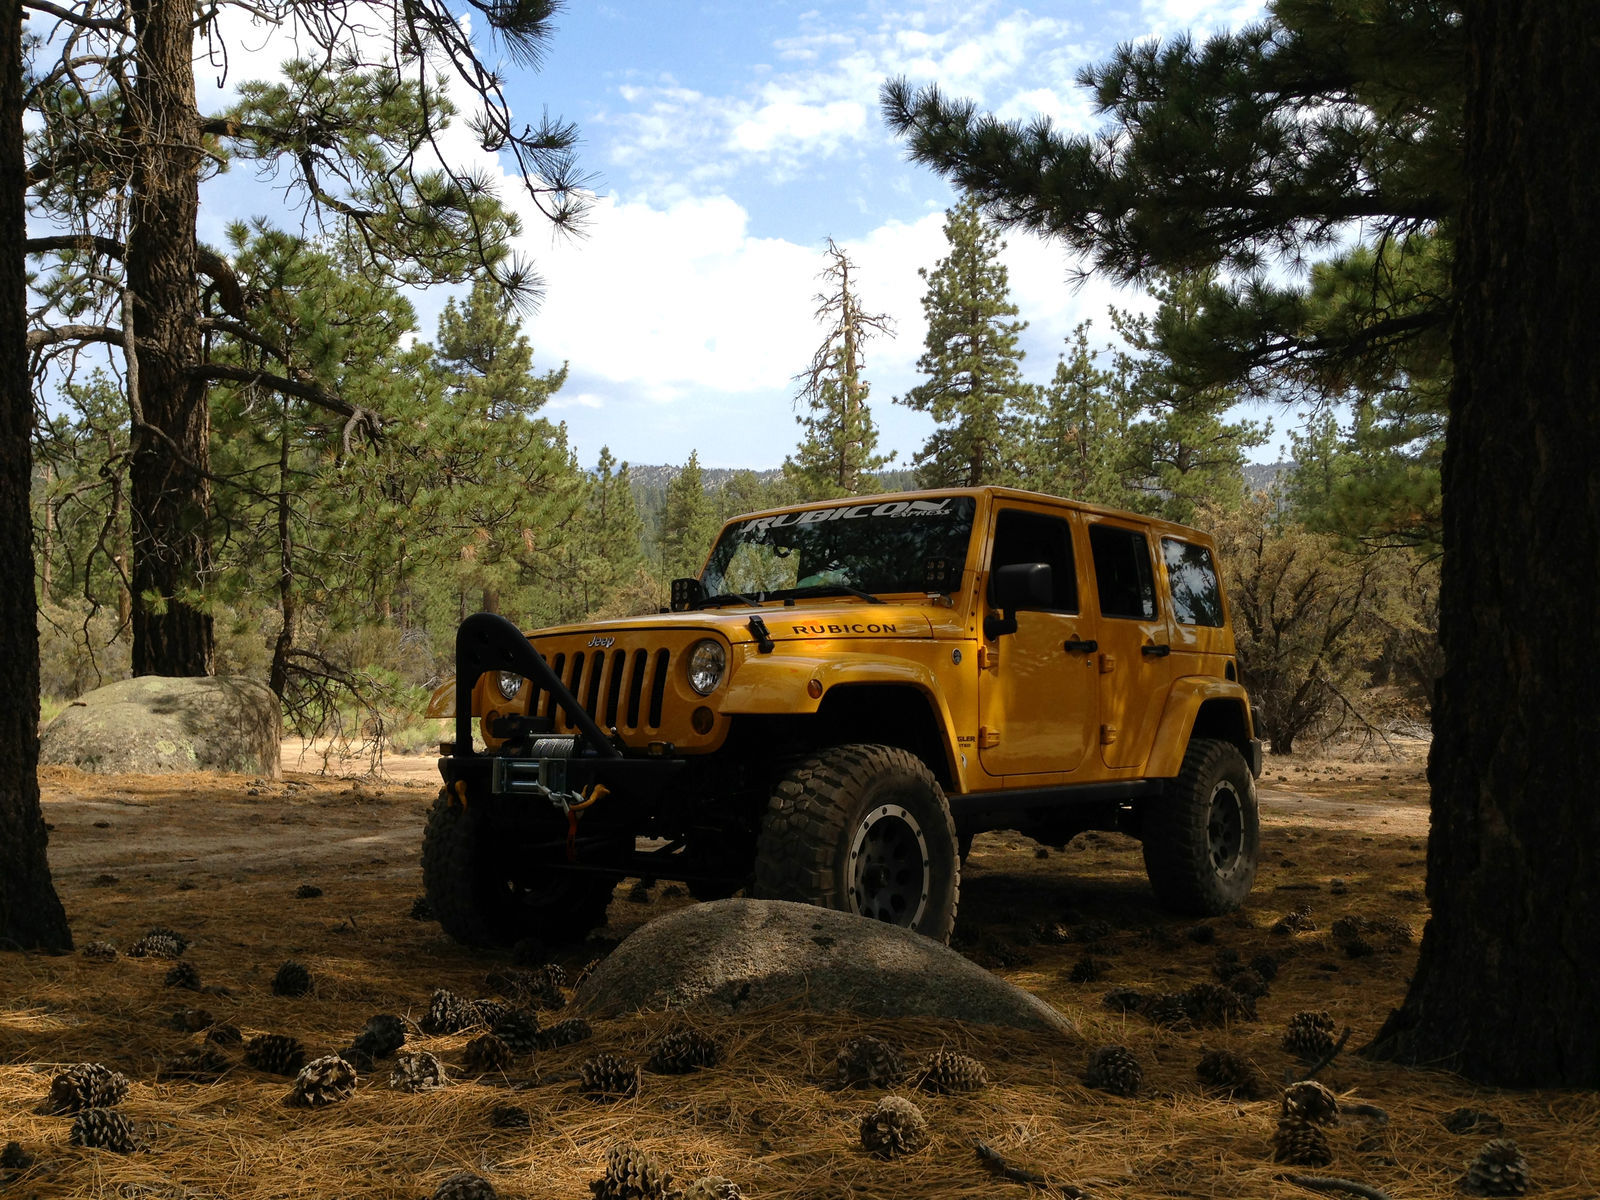 2012 Jeep Wrangler | JK in the Woods